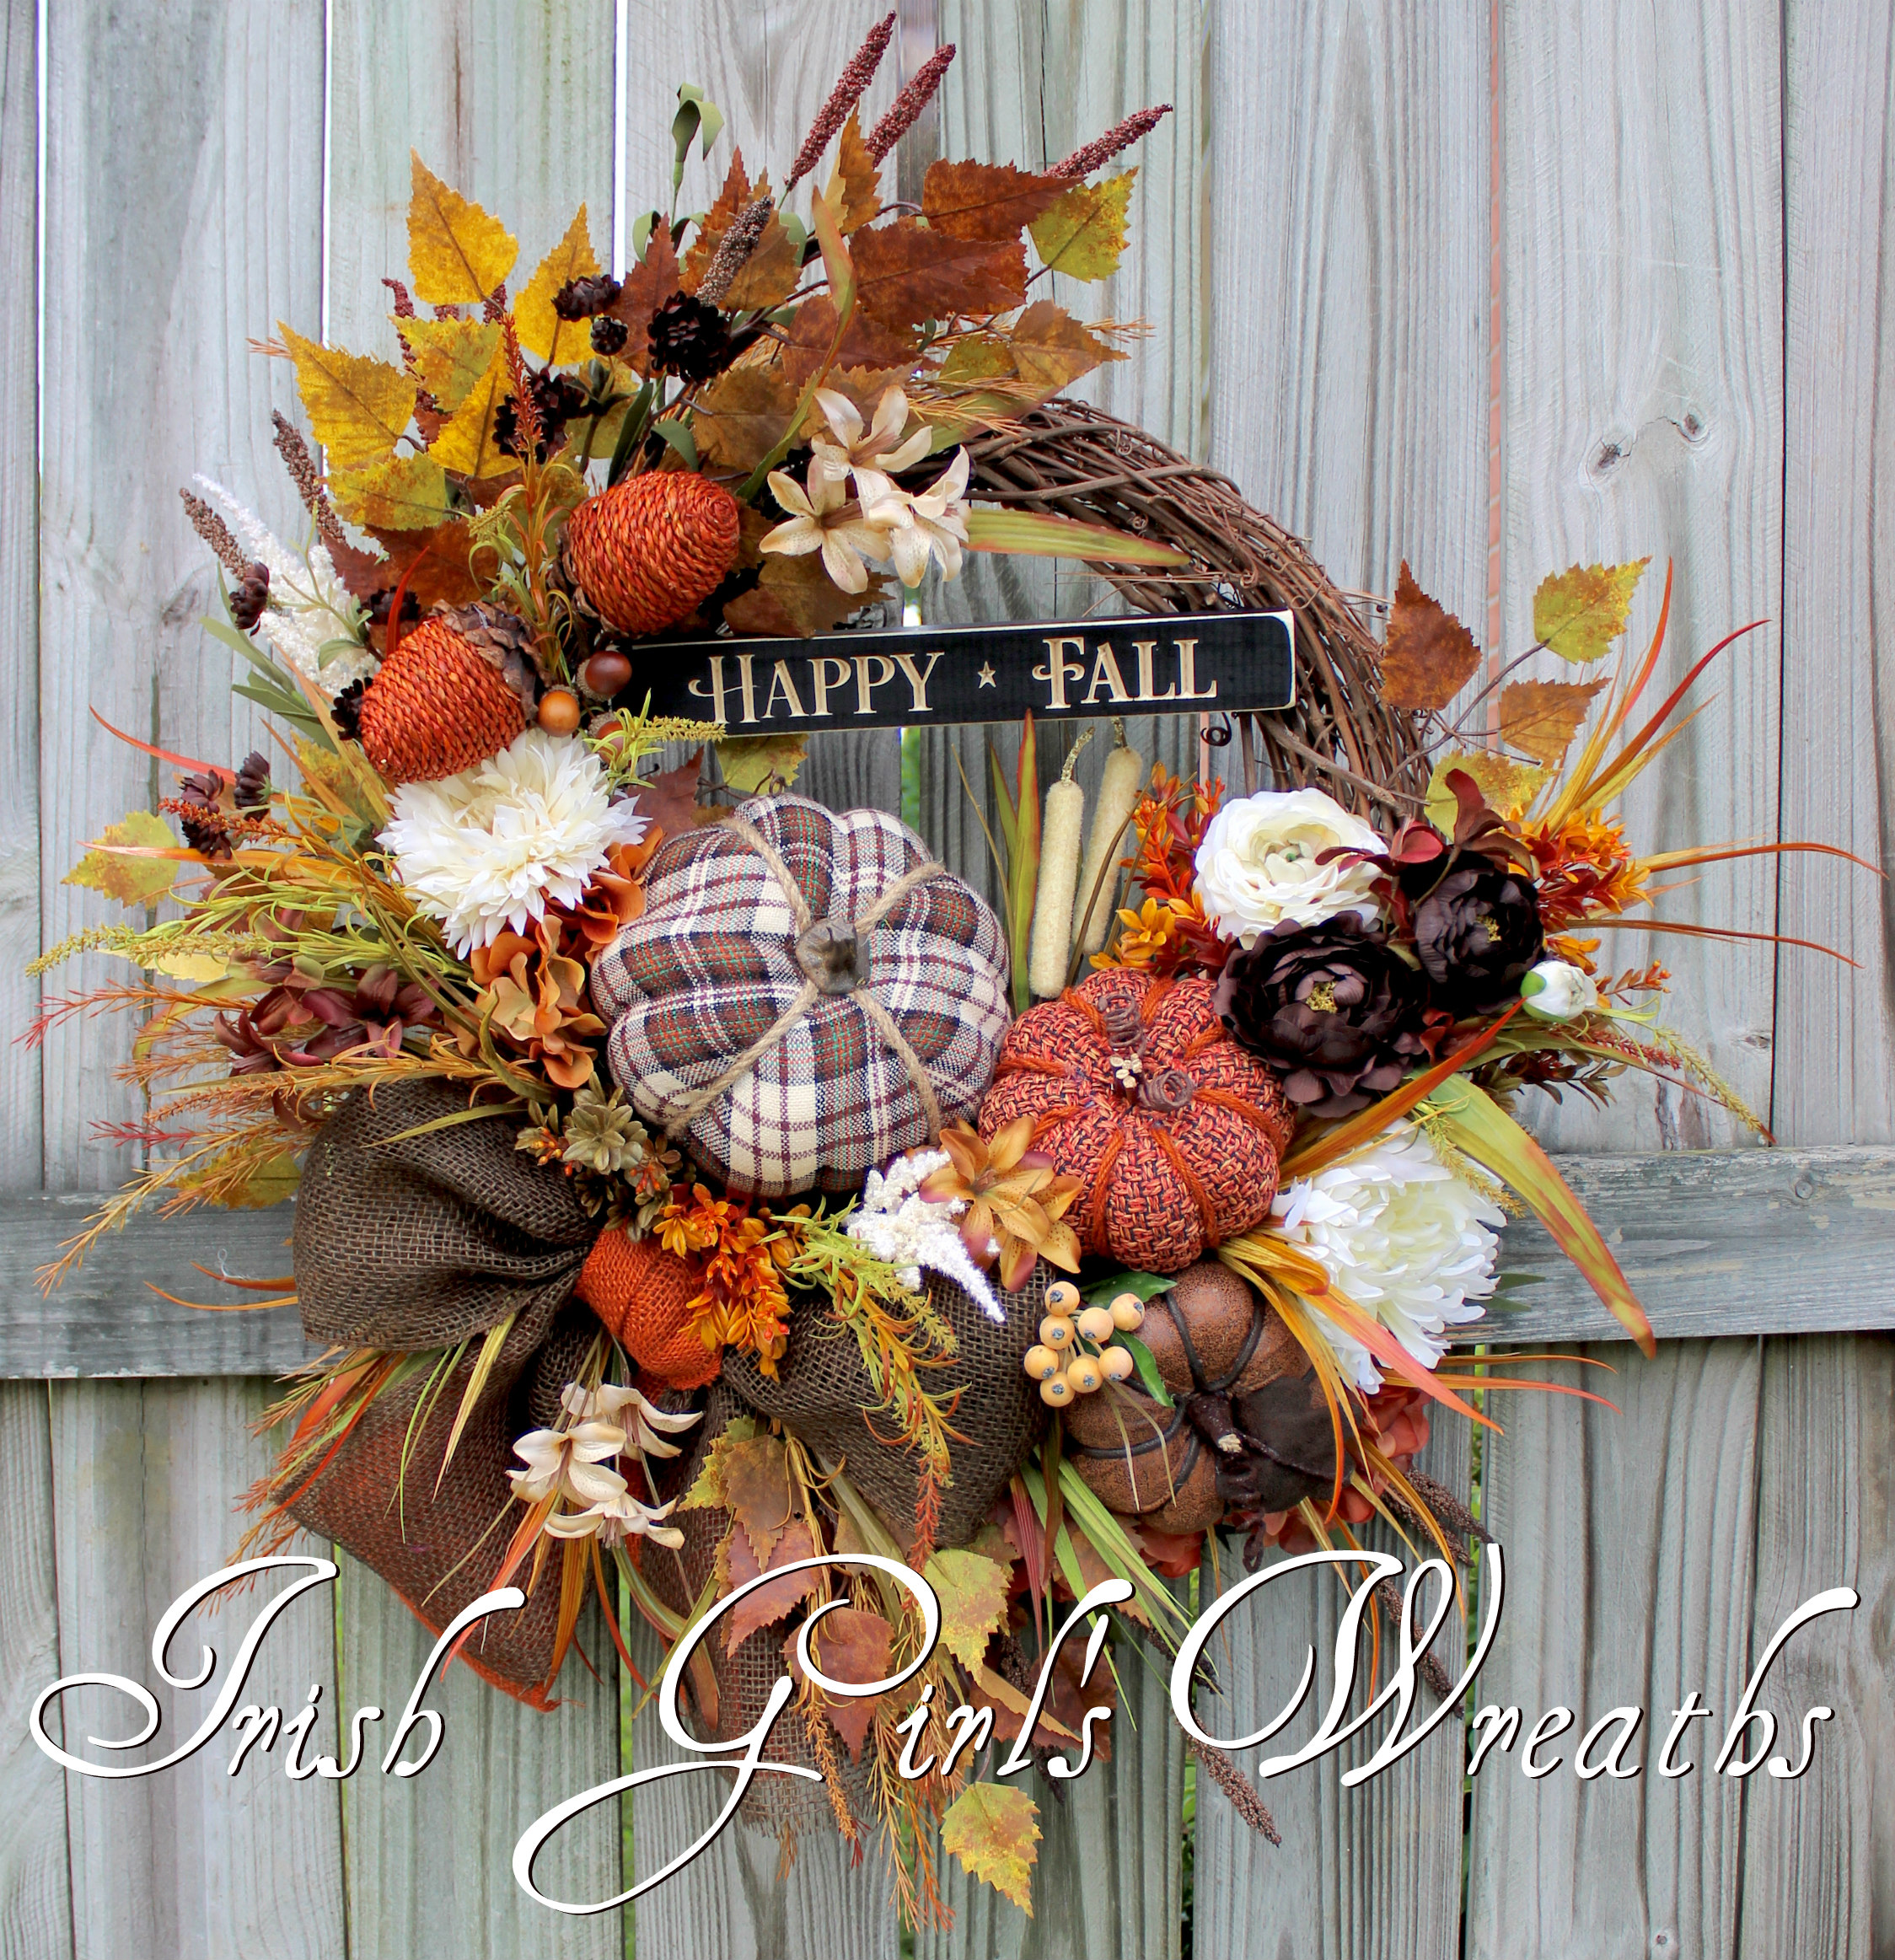 Rustic Happy Fall Tweed Pumpkin Floral Wreath